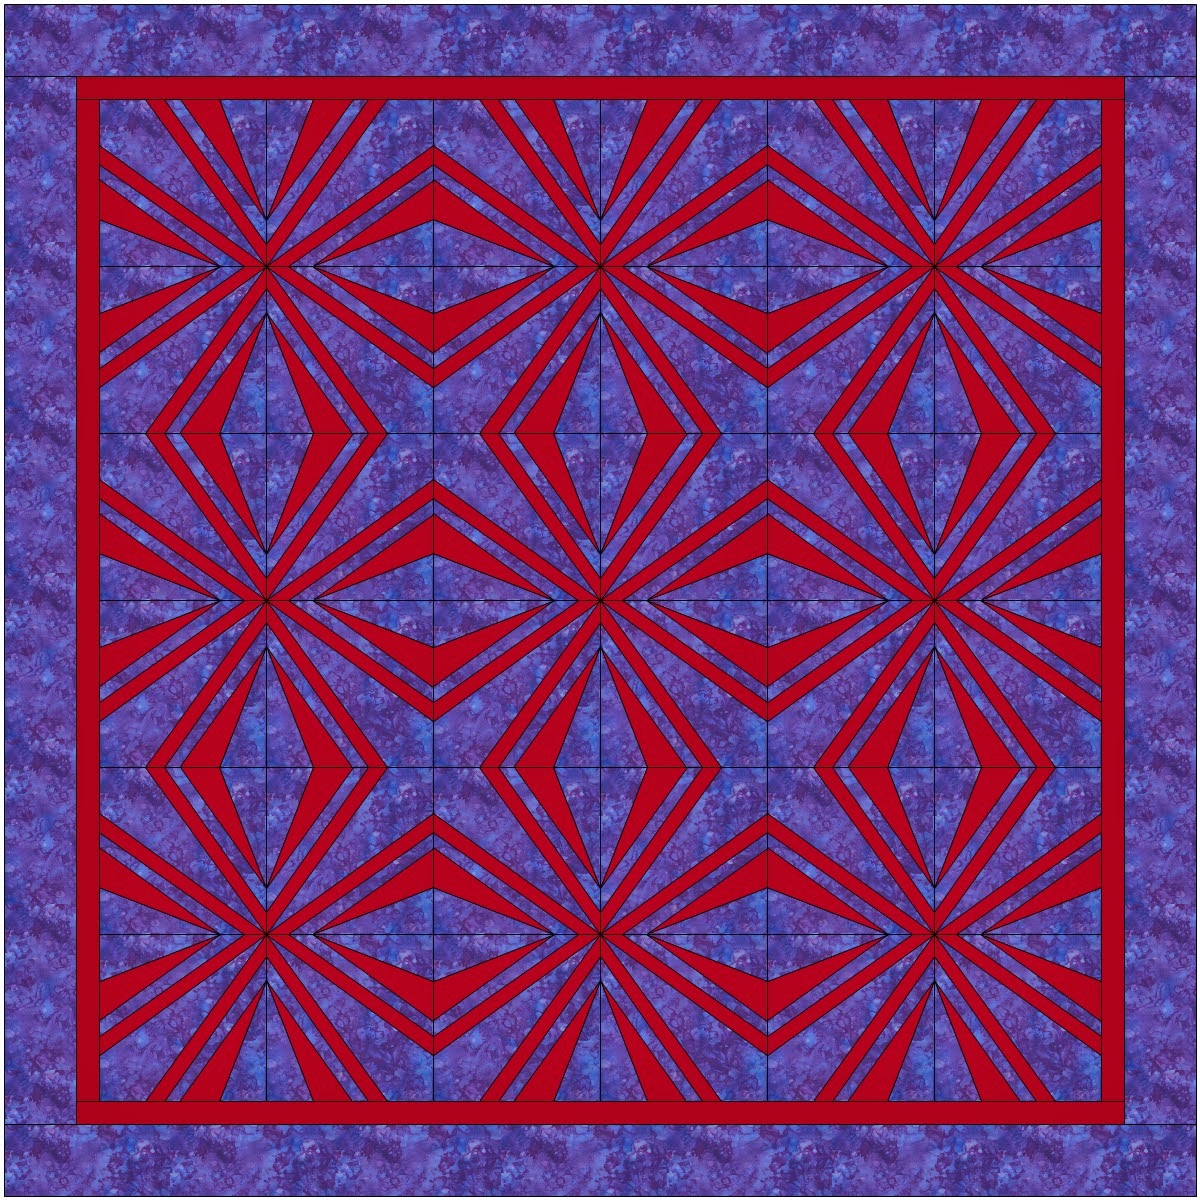 Two Color quilt pattern design : two color quilts patterns - Adamdwight.com